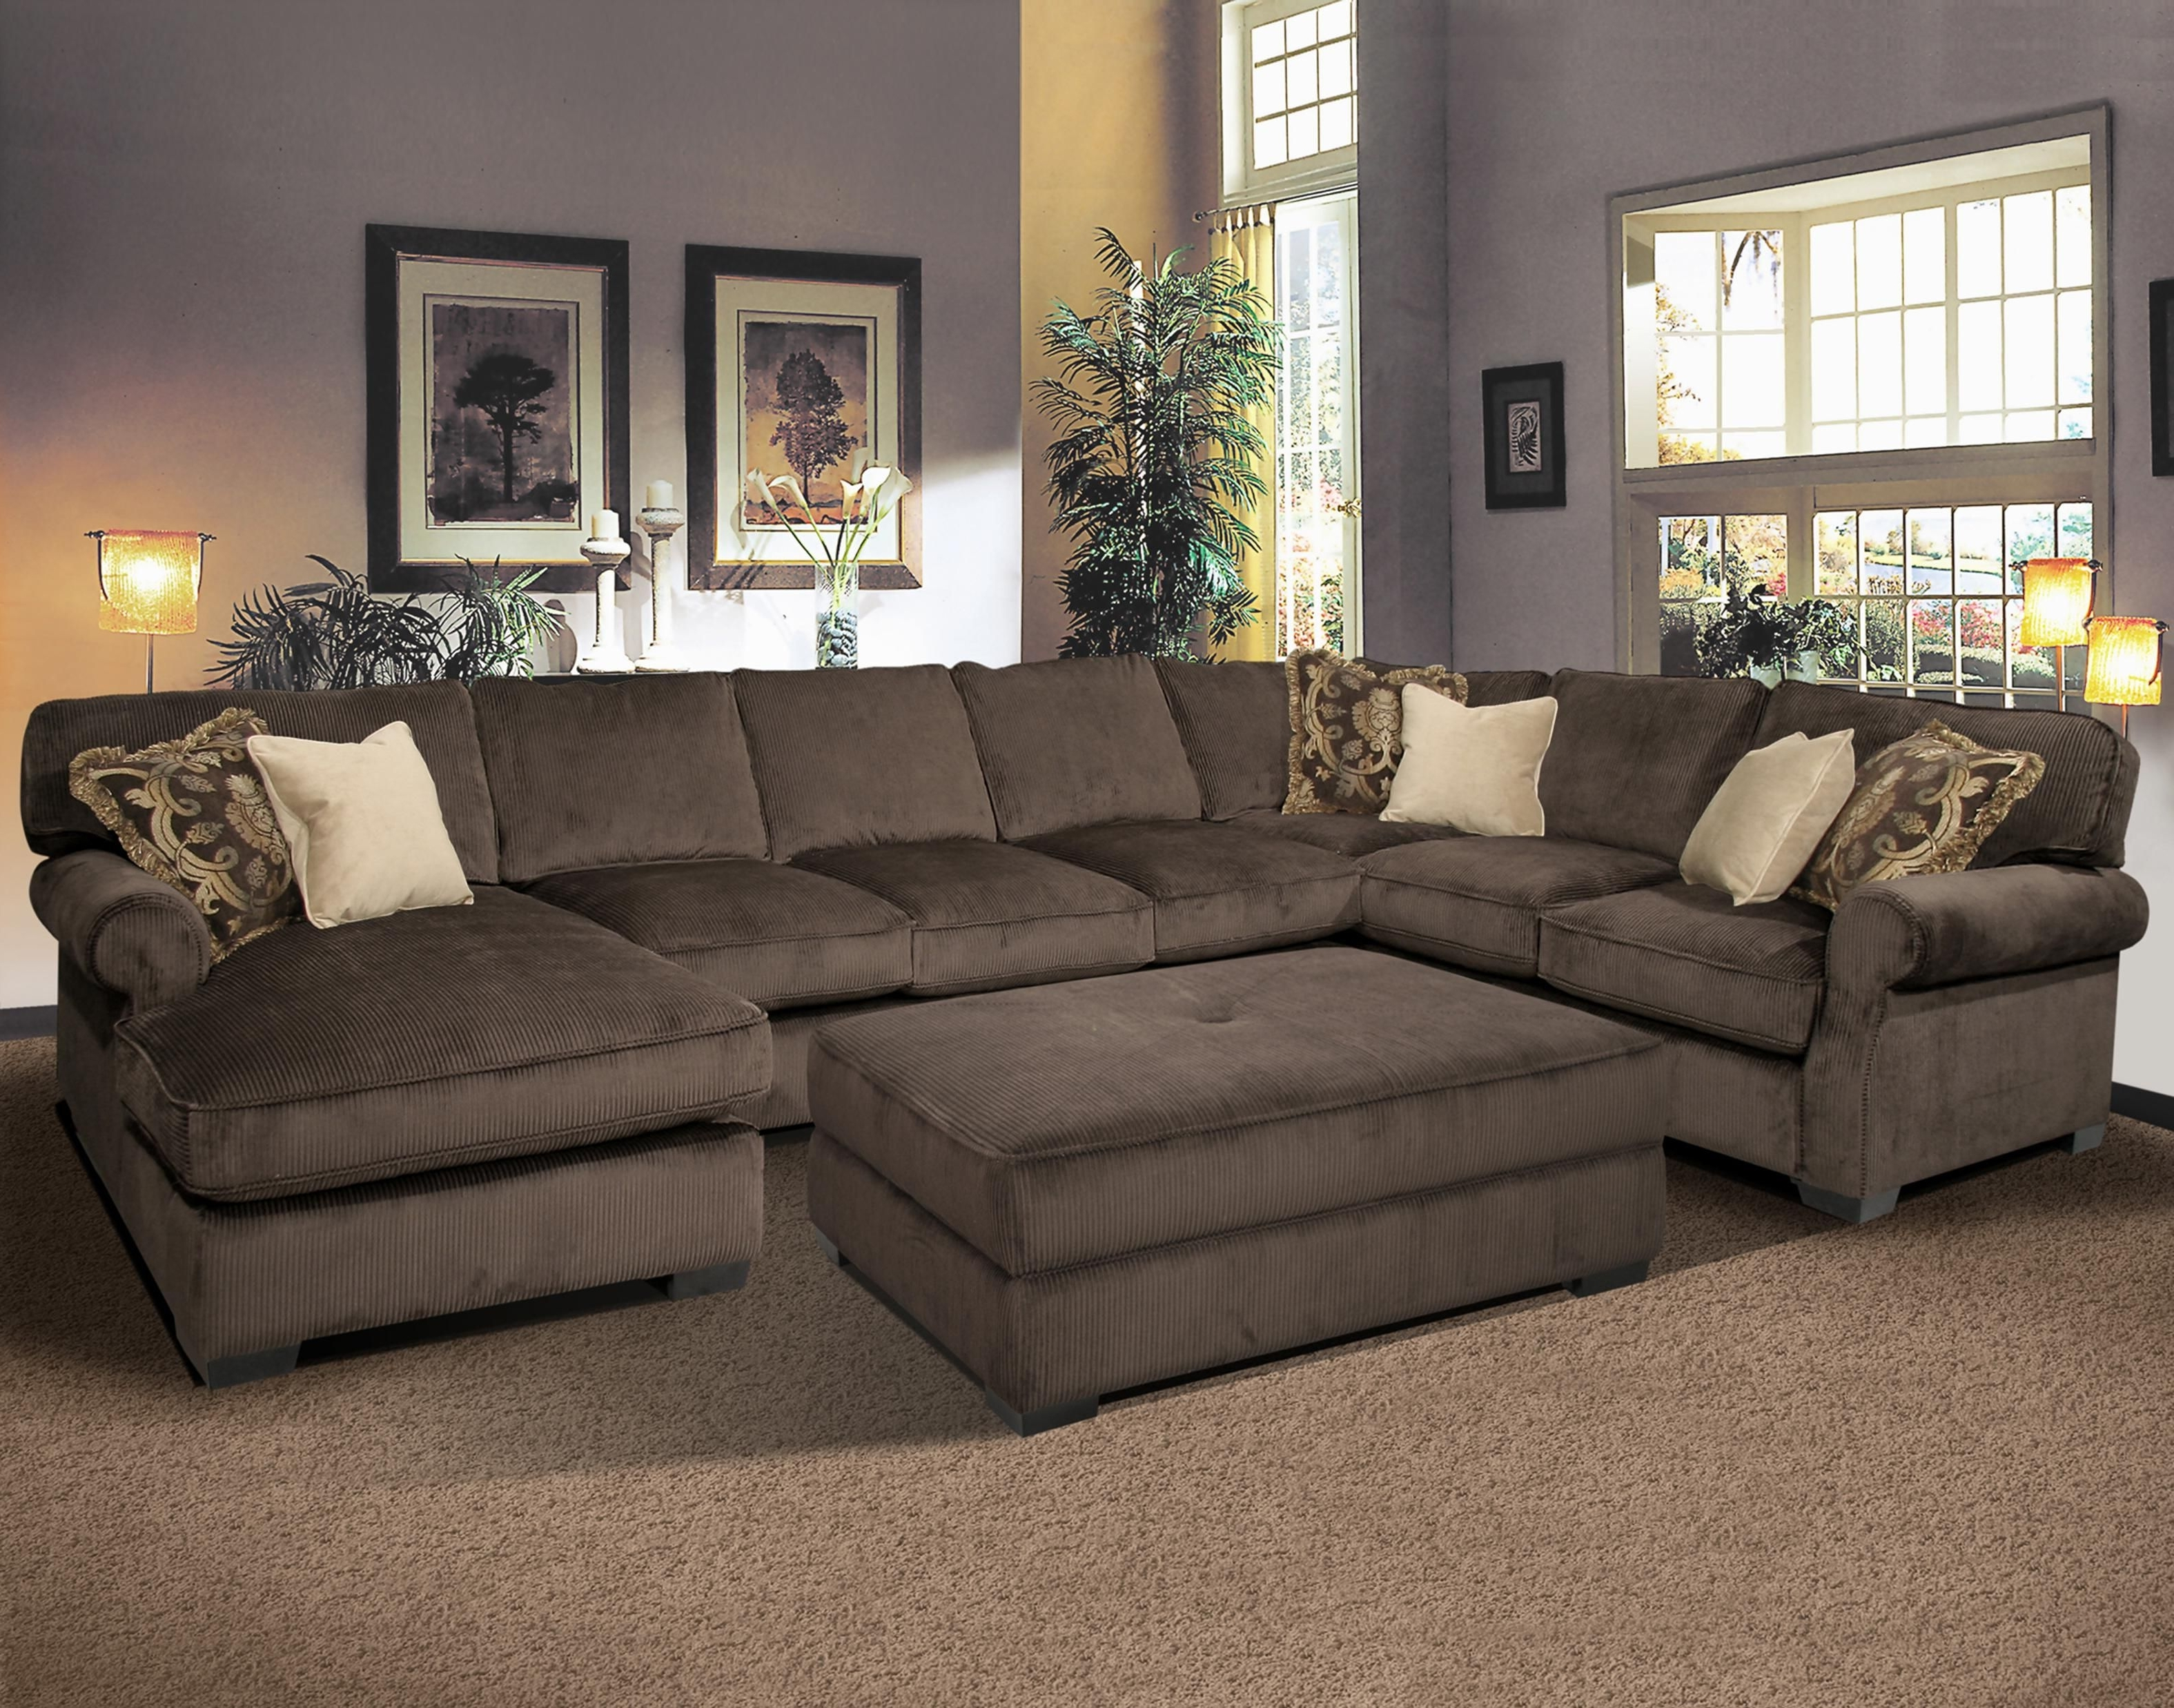 Current Lubbock Sectional Sofas With Big And Comfy Grand Island Large, 7 Seat Sectional Sofa With Right (View 4 of 15)